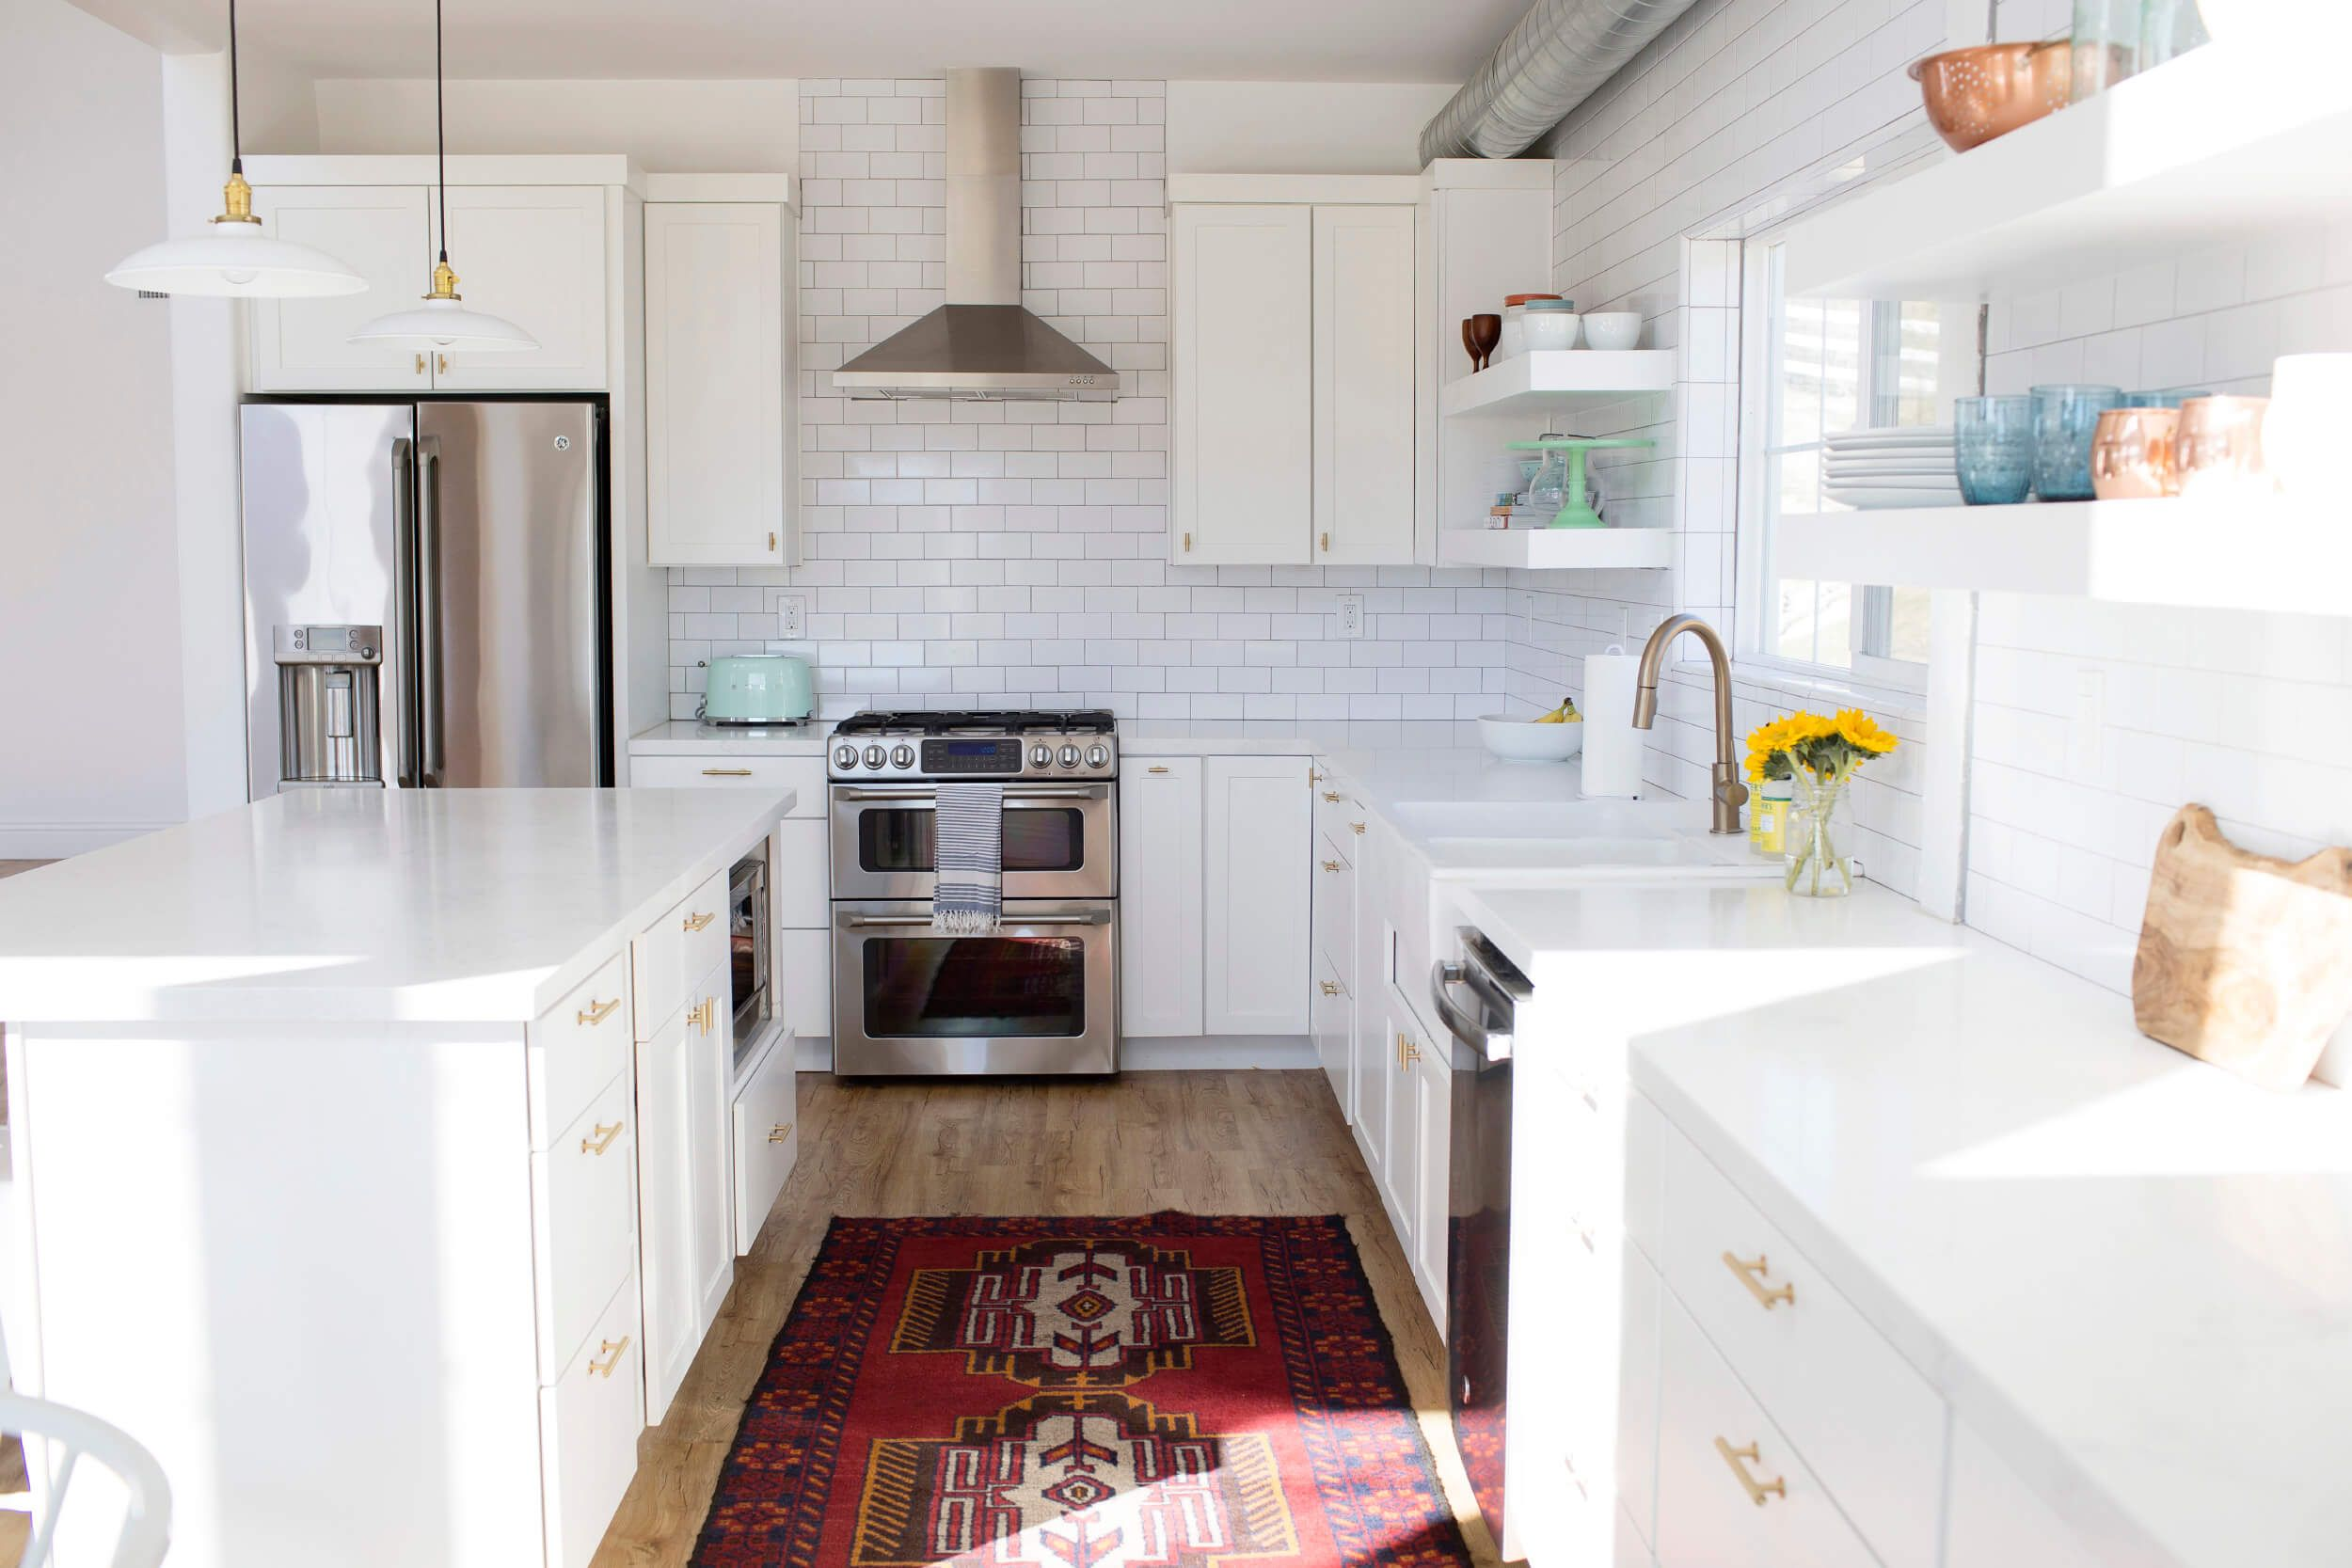 At Home With Lindsay Kujawa In Temecula California Kitchen Plans Boho Kitchen Kitchen Design